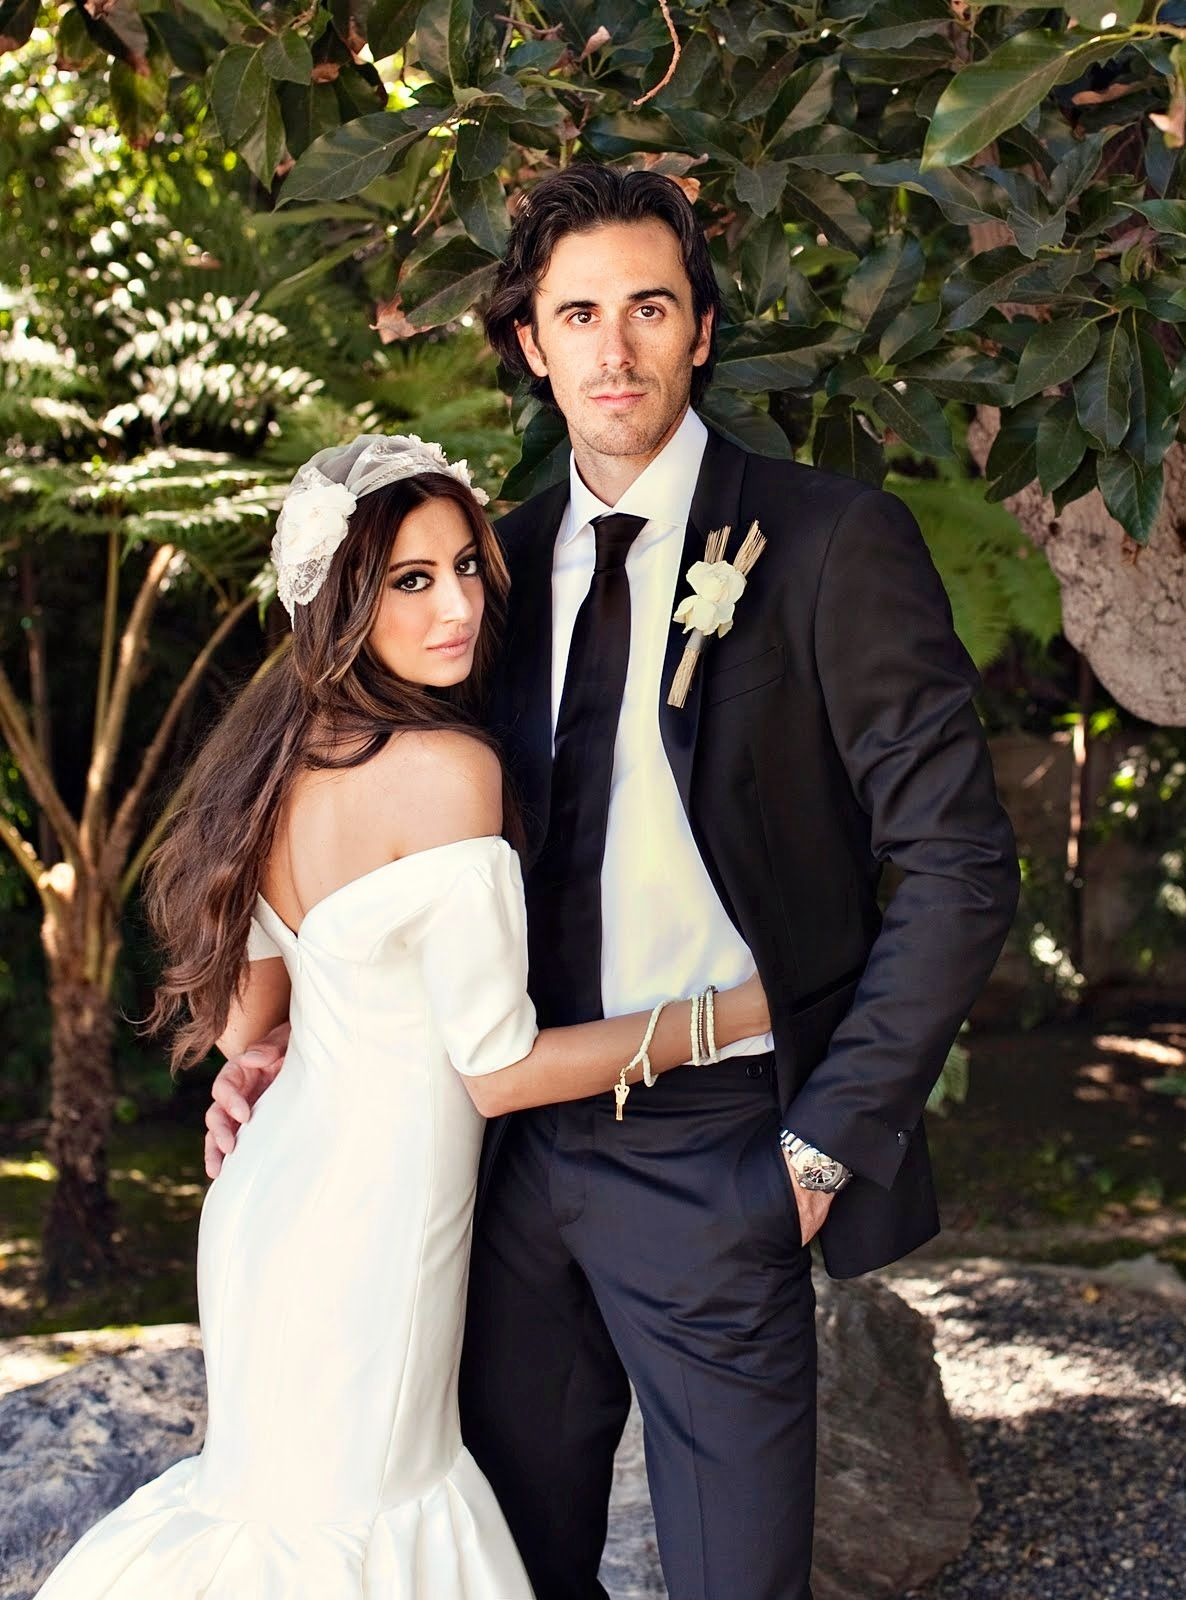 Noureen DeWulf with her spouse Ryan Miller at their wedding day.